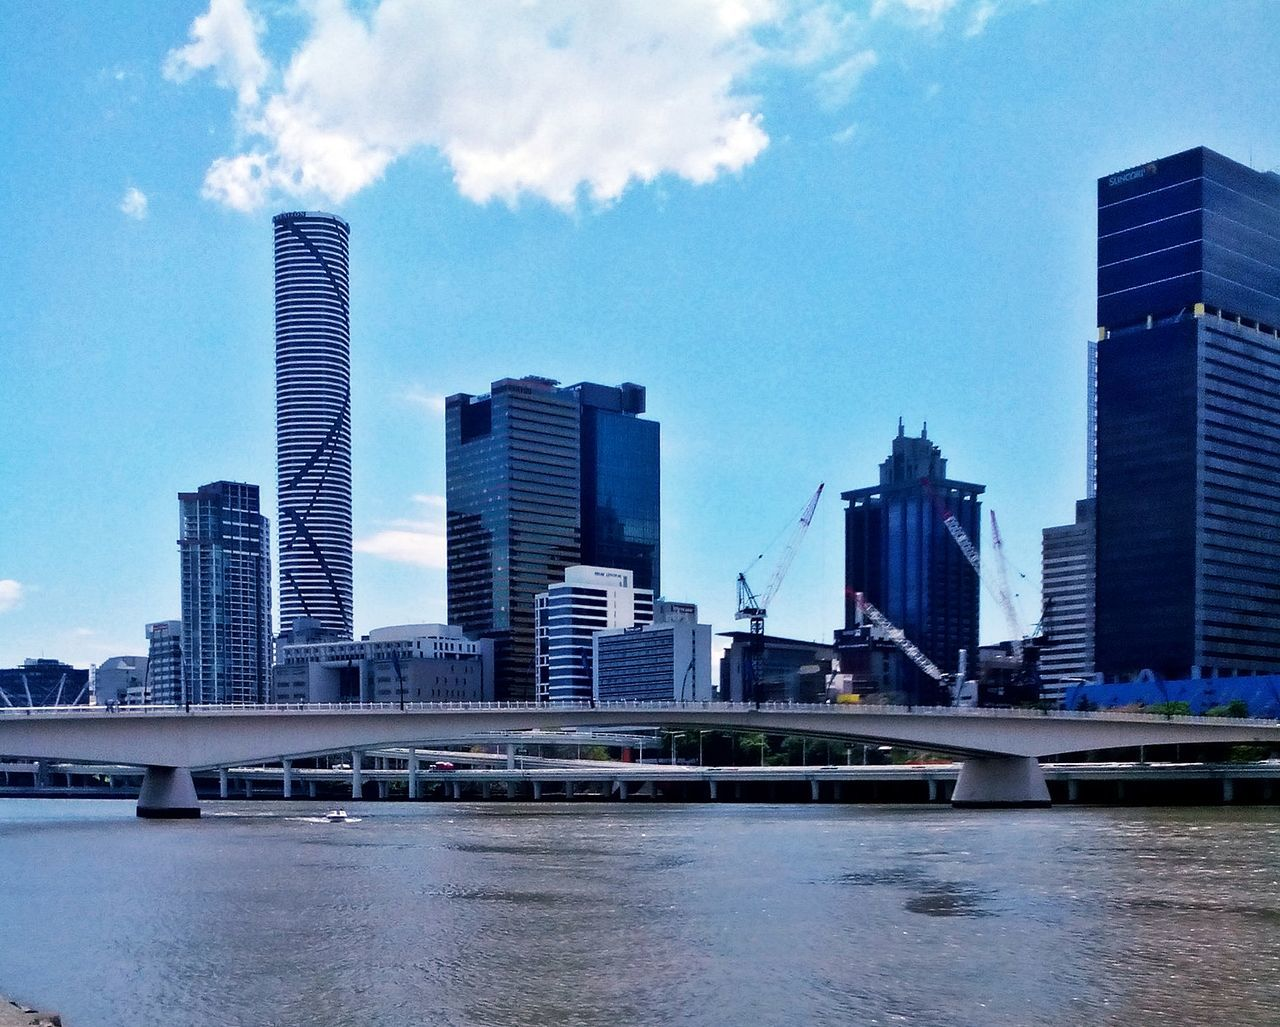 Architecture Bridge - Man Made Structure Brisbane Brisbane River Building Exterior Built Structure City Cityscape Cloud - Sky Day Downtown District Low Angle View Modern No People Office Building Exterior Office Park Outdoors Reflection River Sky Skyscraper Urban Skyline Water Waterfront Adapted To The City The Architect - 2017 EyeEm Awards